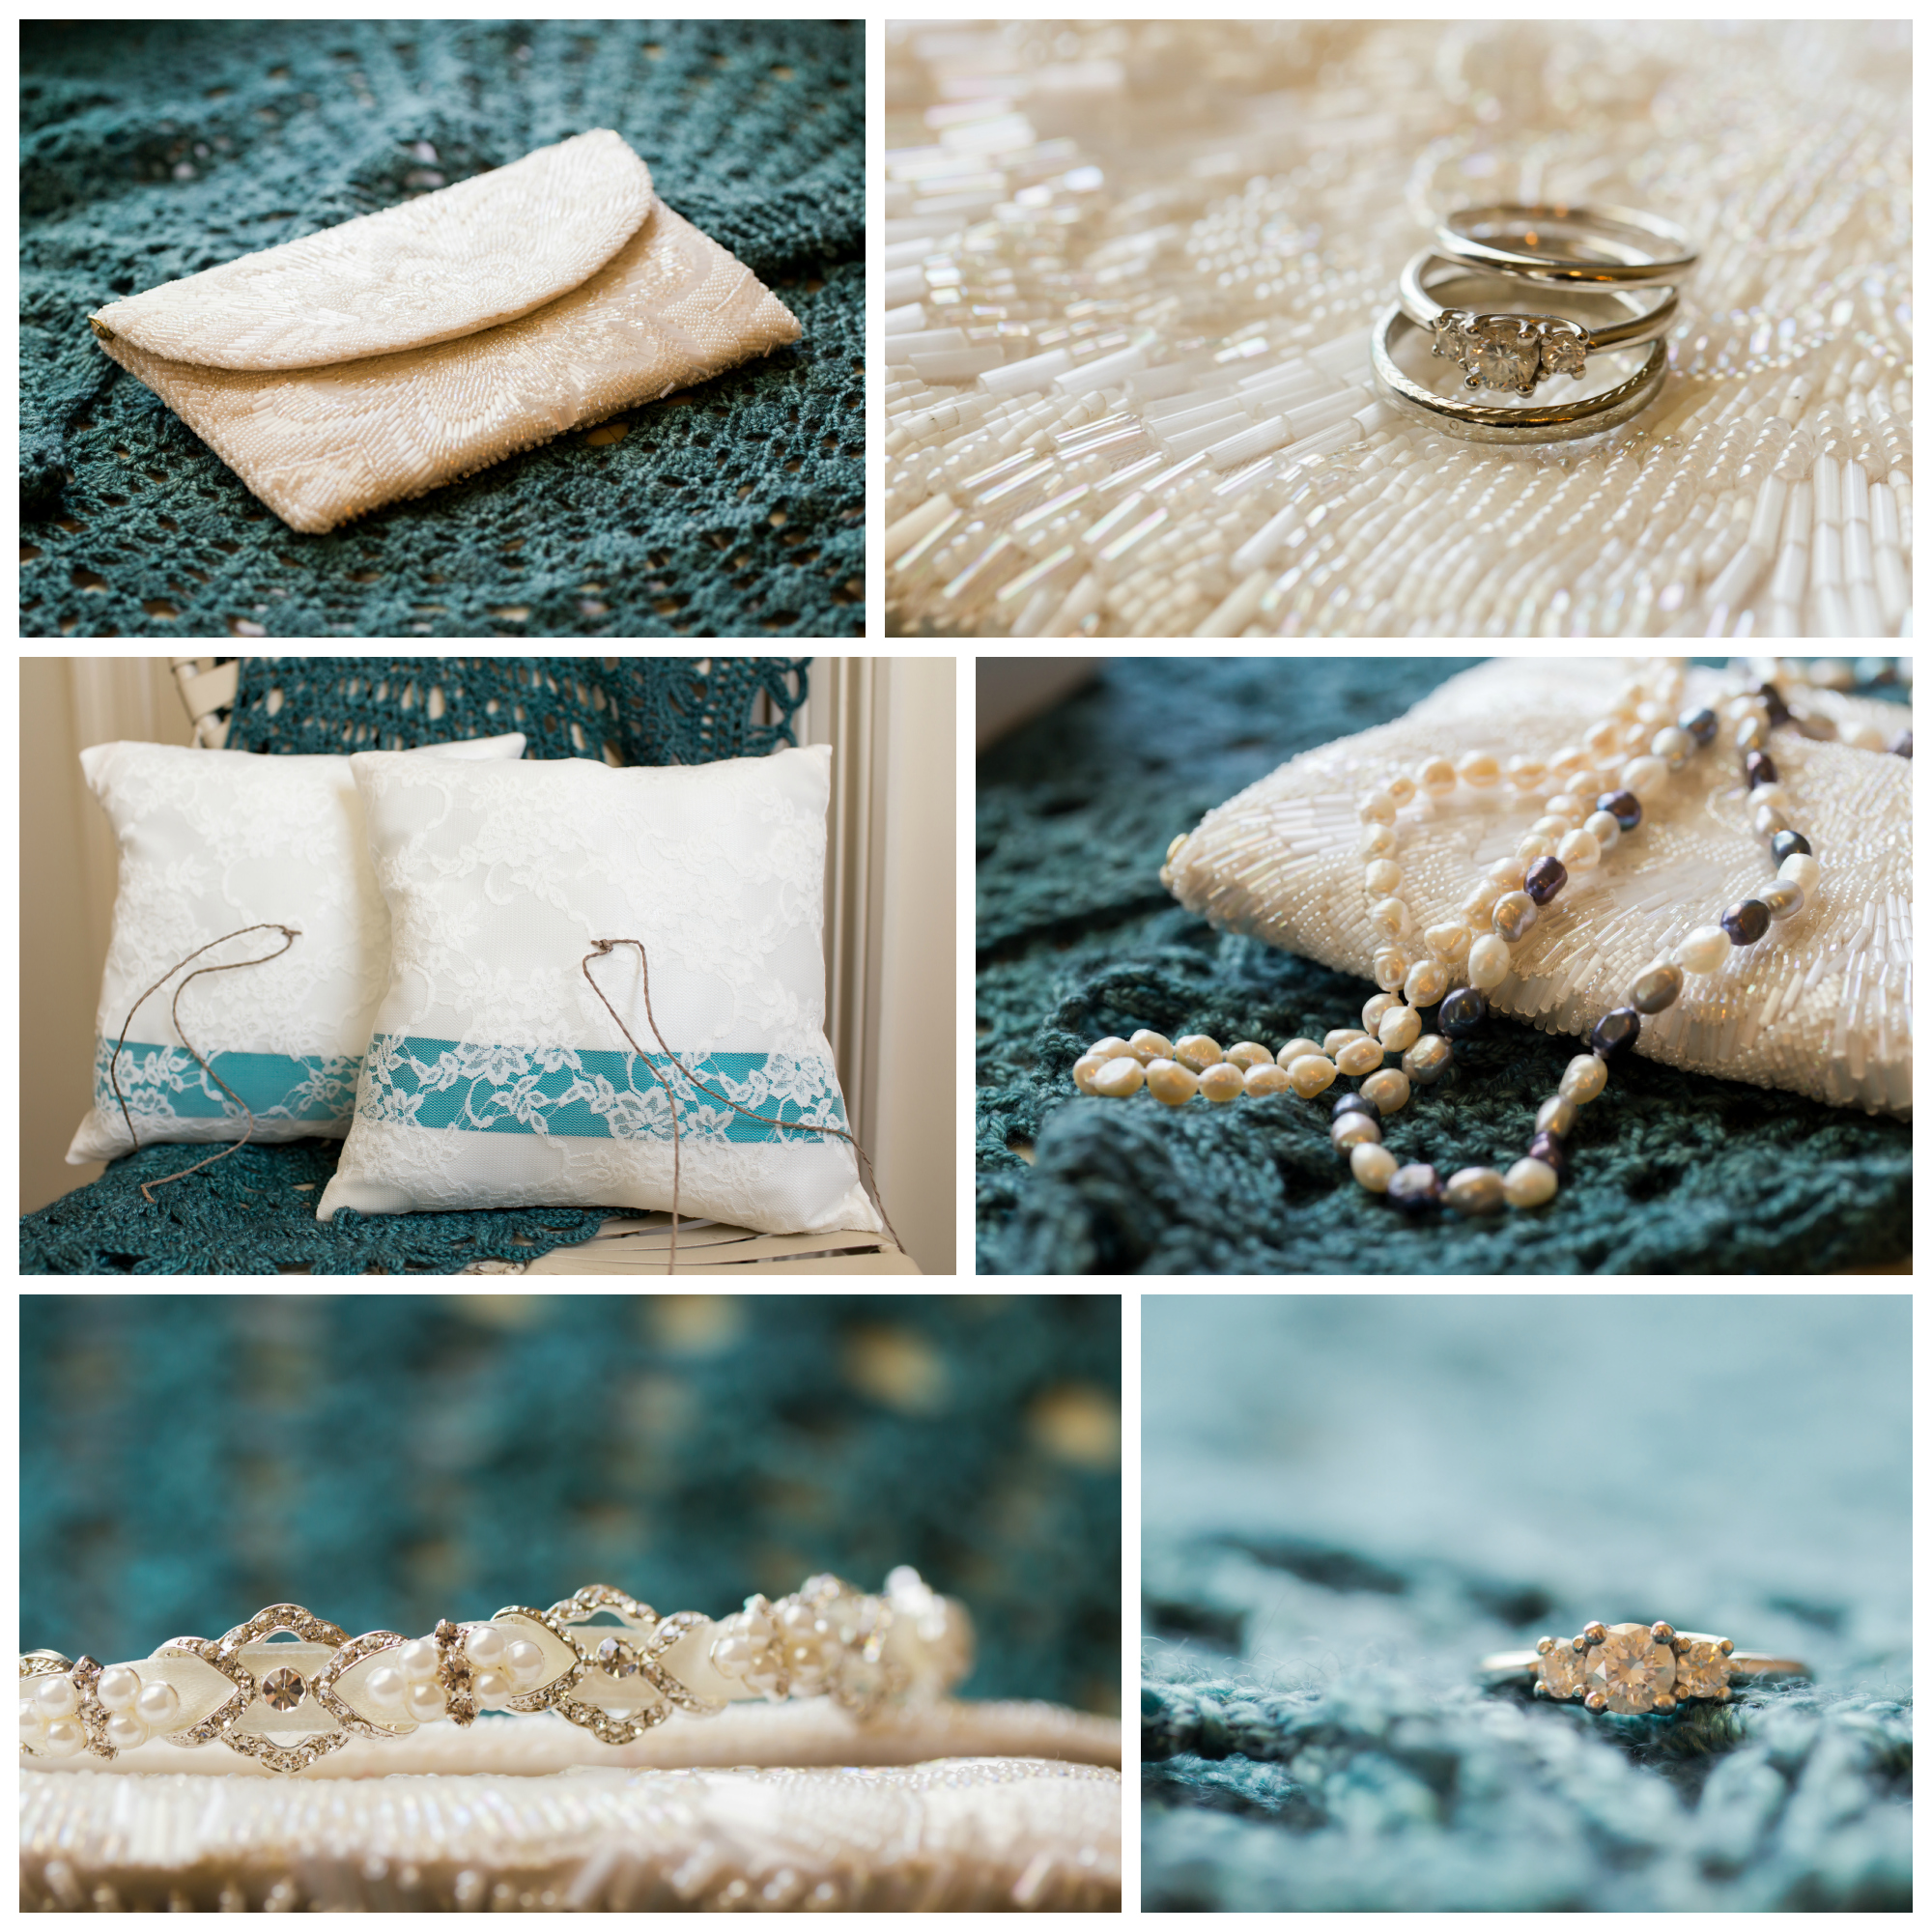 wedding detail macro photos by Uninvented Colors Photography (wedding ring, jewelry, purse, ring bearer pillows)